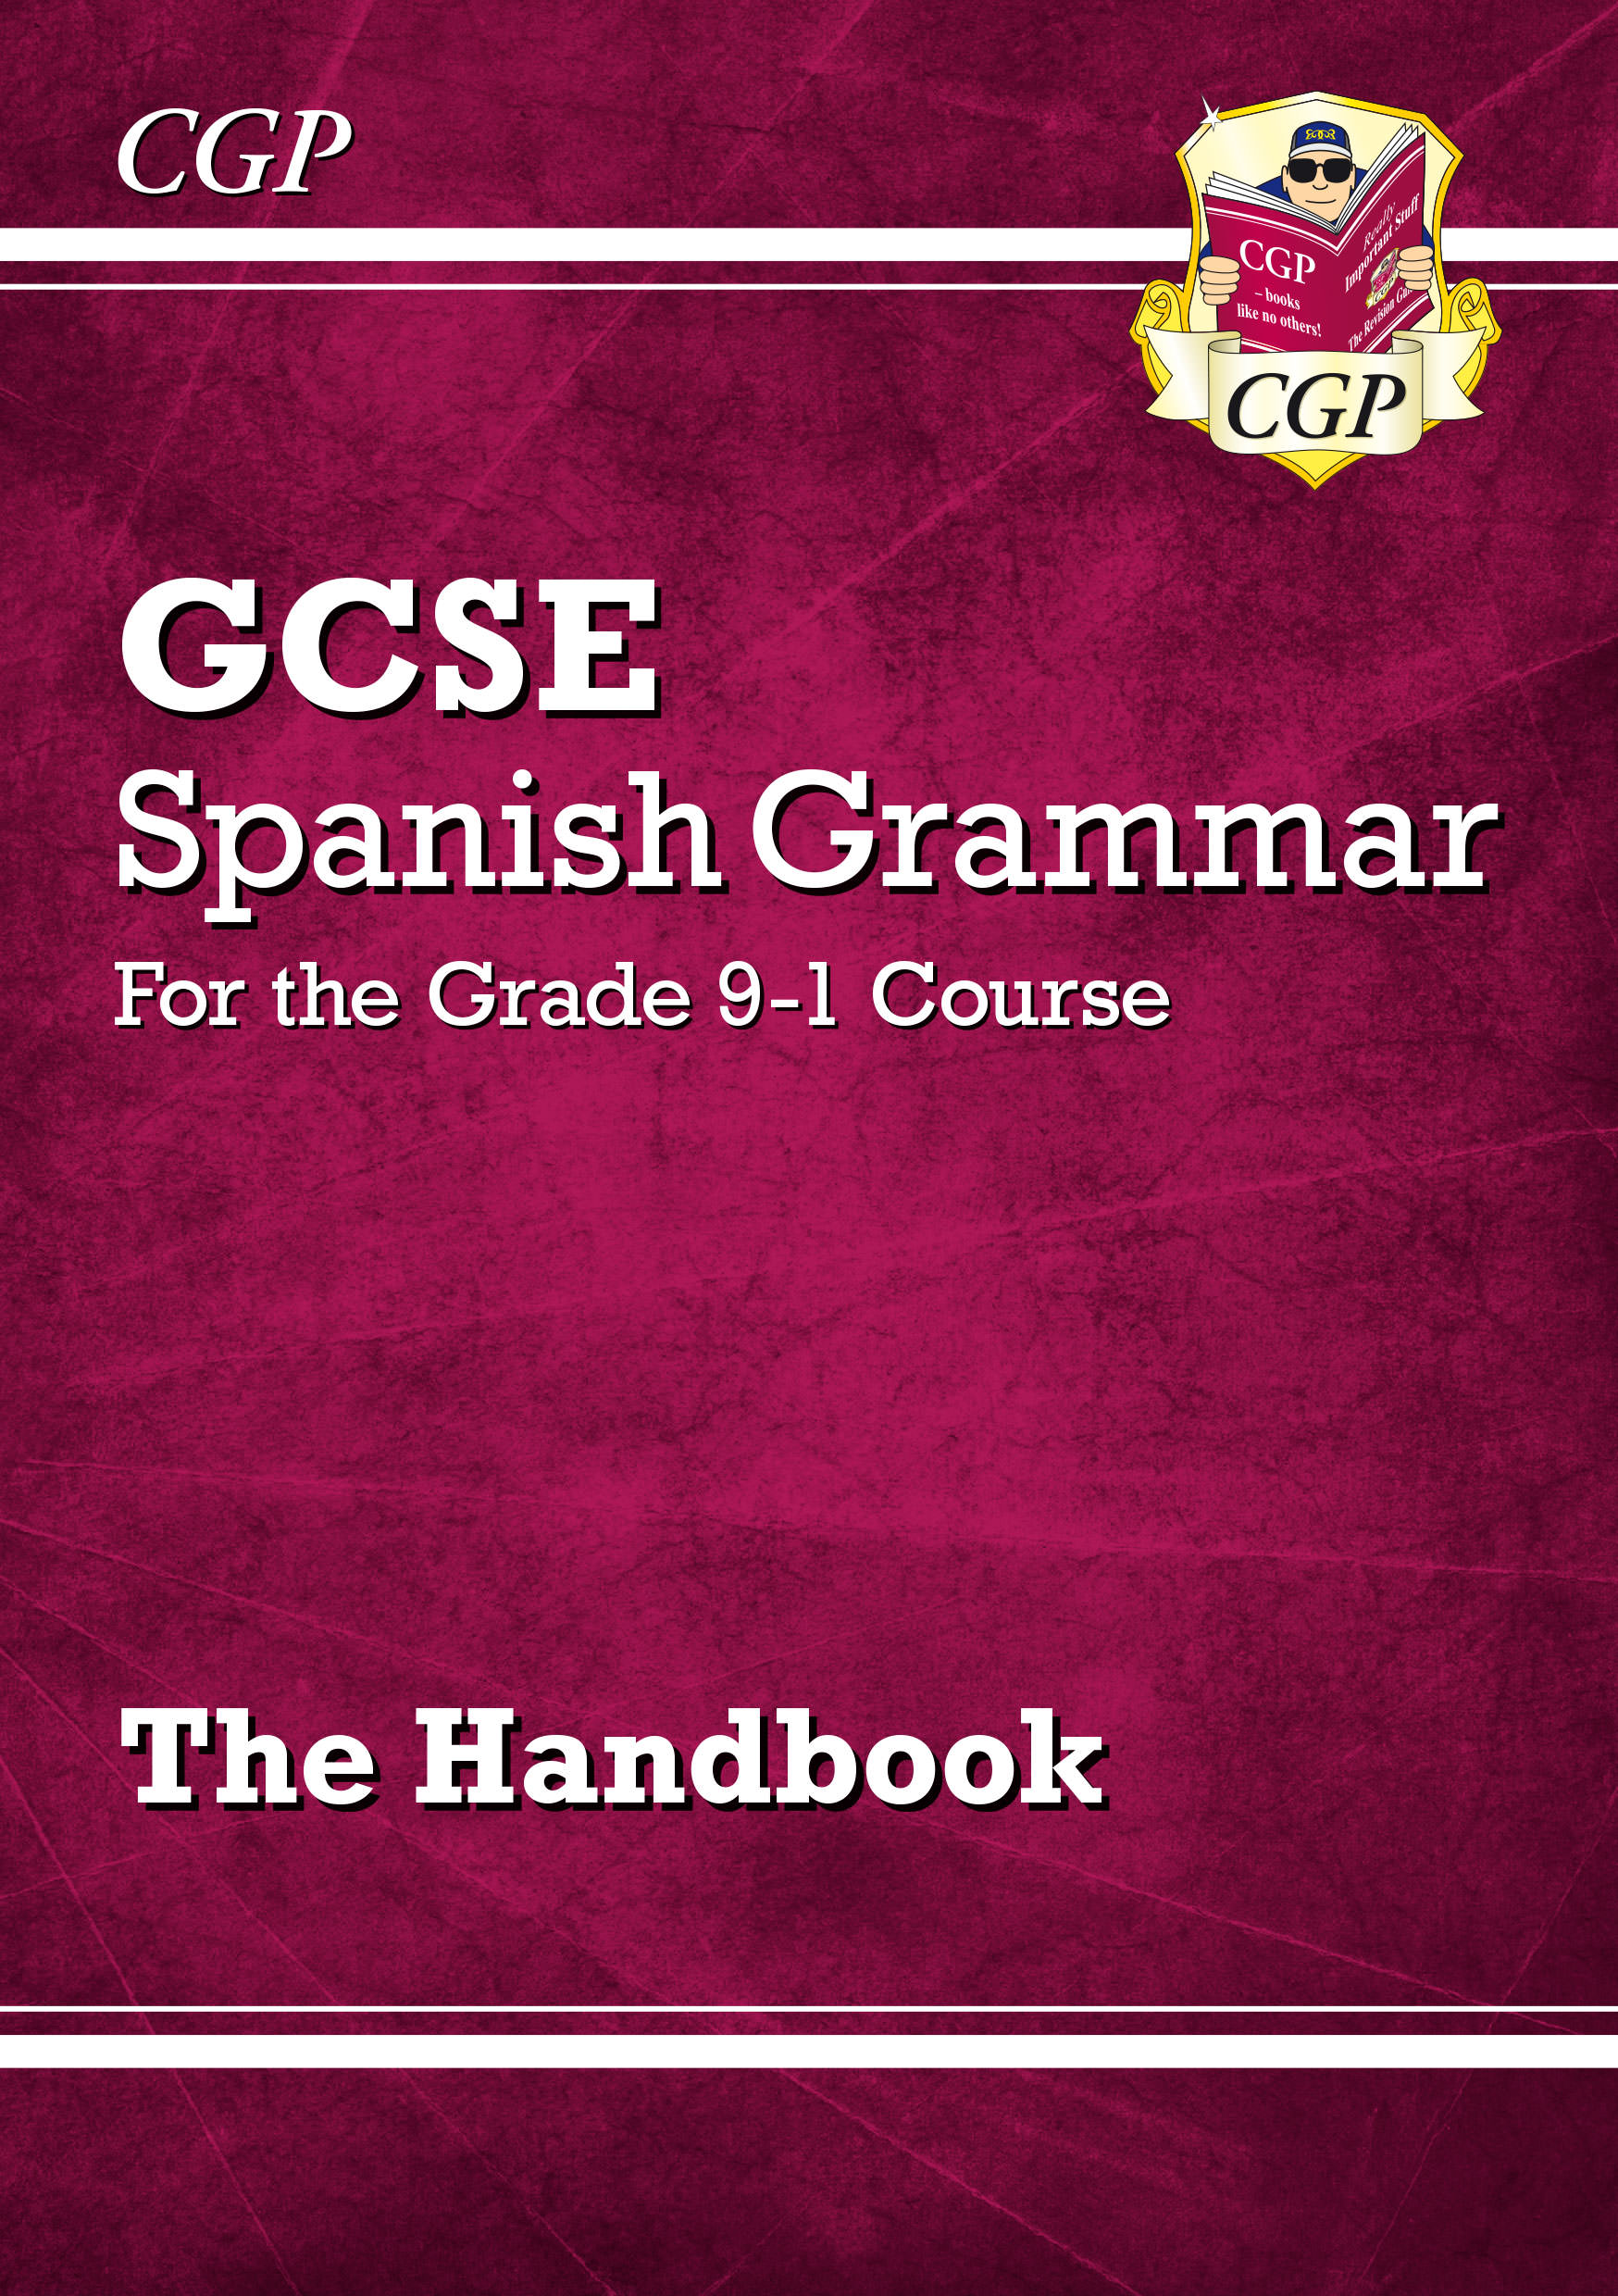 SPGR41 - New GCSE Spanish Grammar Handbook - for the Grade 9-1 Course